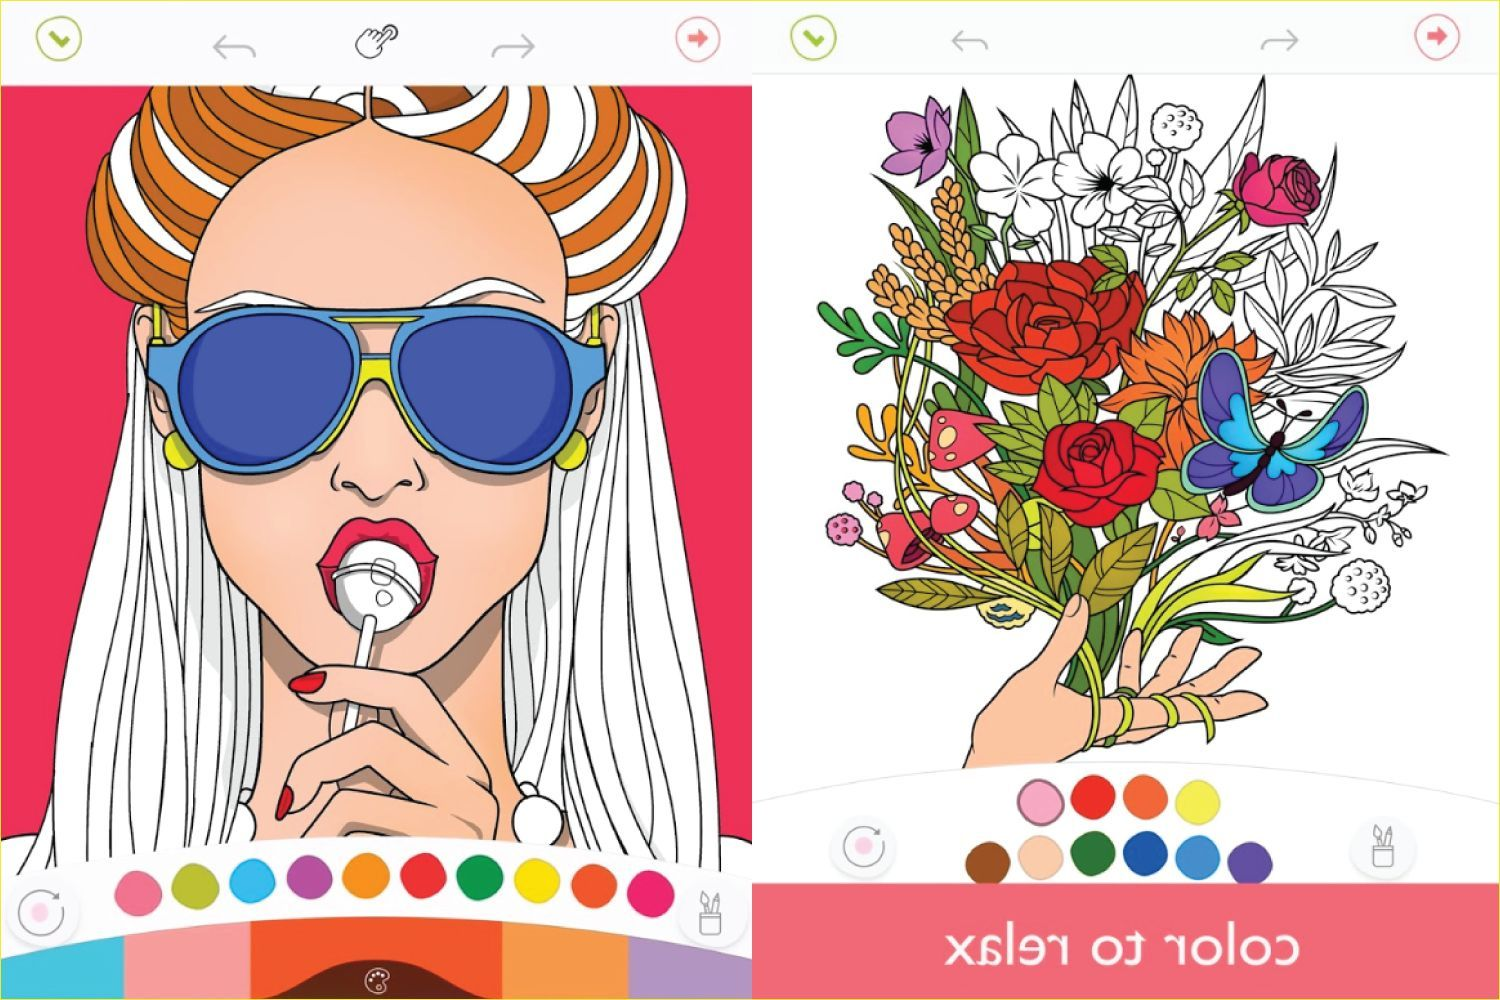 17 Best Of Coloring Apps Android Image Coloring Apps Coloring Book App Android Apps